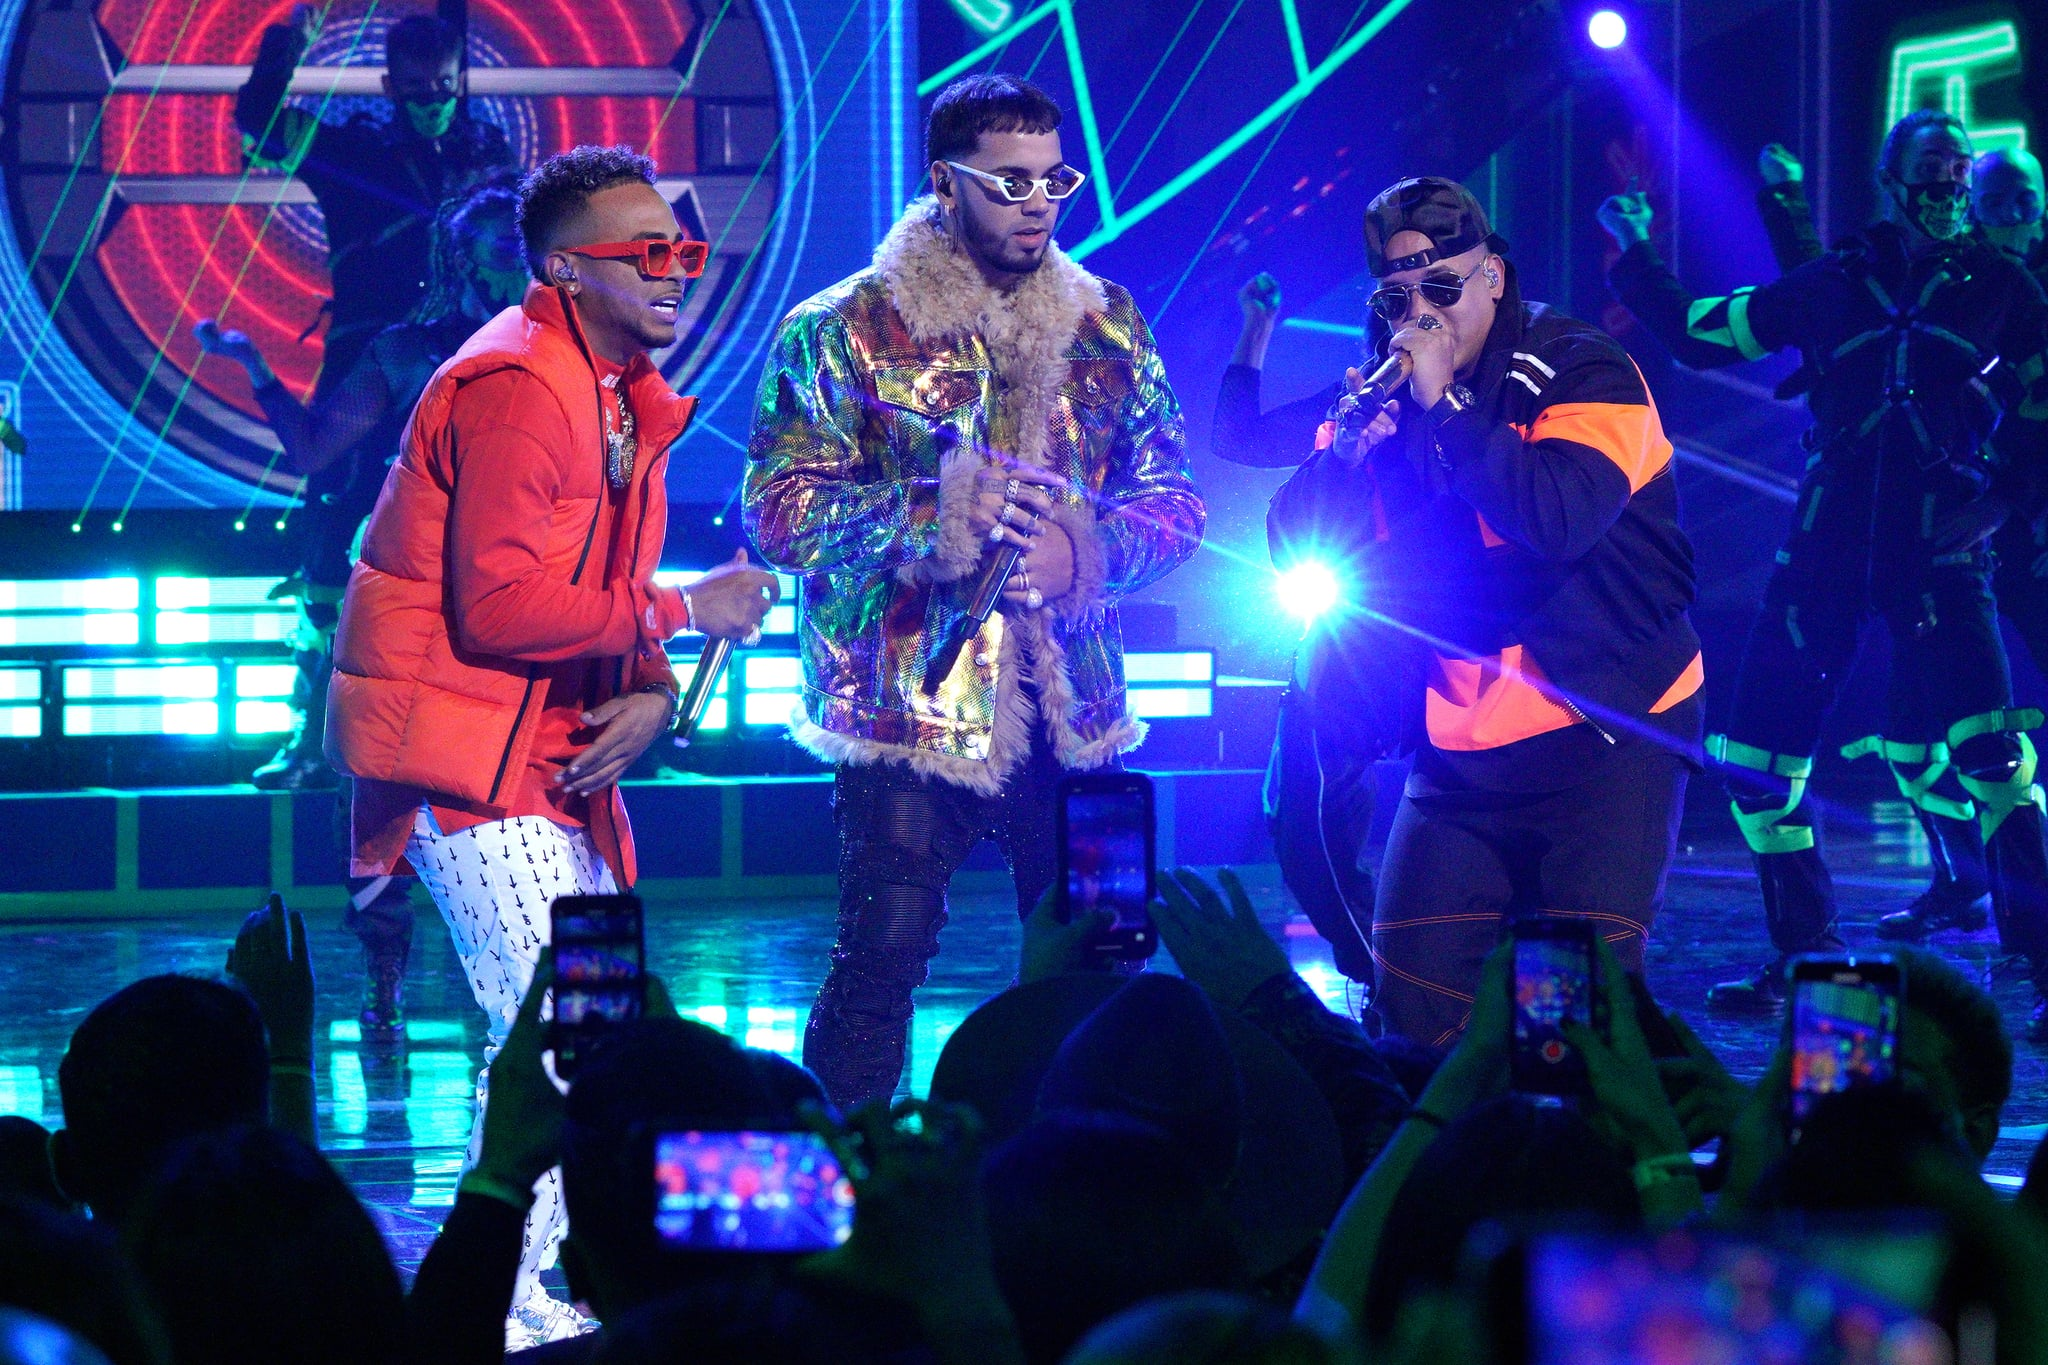 HOLLYWOOD, CALIFORNIA - OCTOBER 17: (L-R) Ozuna, Anuel AA and Daddy Yankee perform onstage during the 2019 Latin American Music Awards at Dolby Theatre on October 17, 2019 in Hollywood, California. (Photo by JC Olivera/Getty Images)